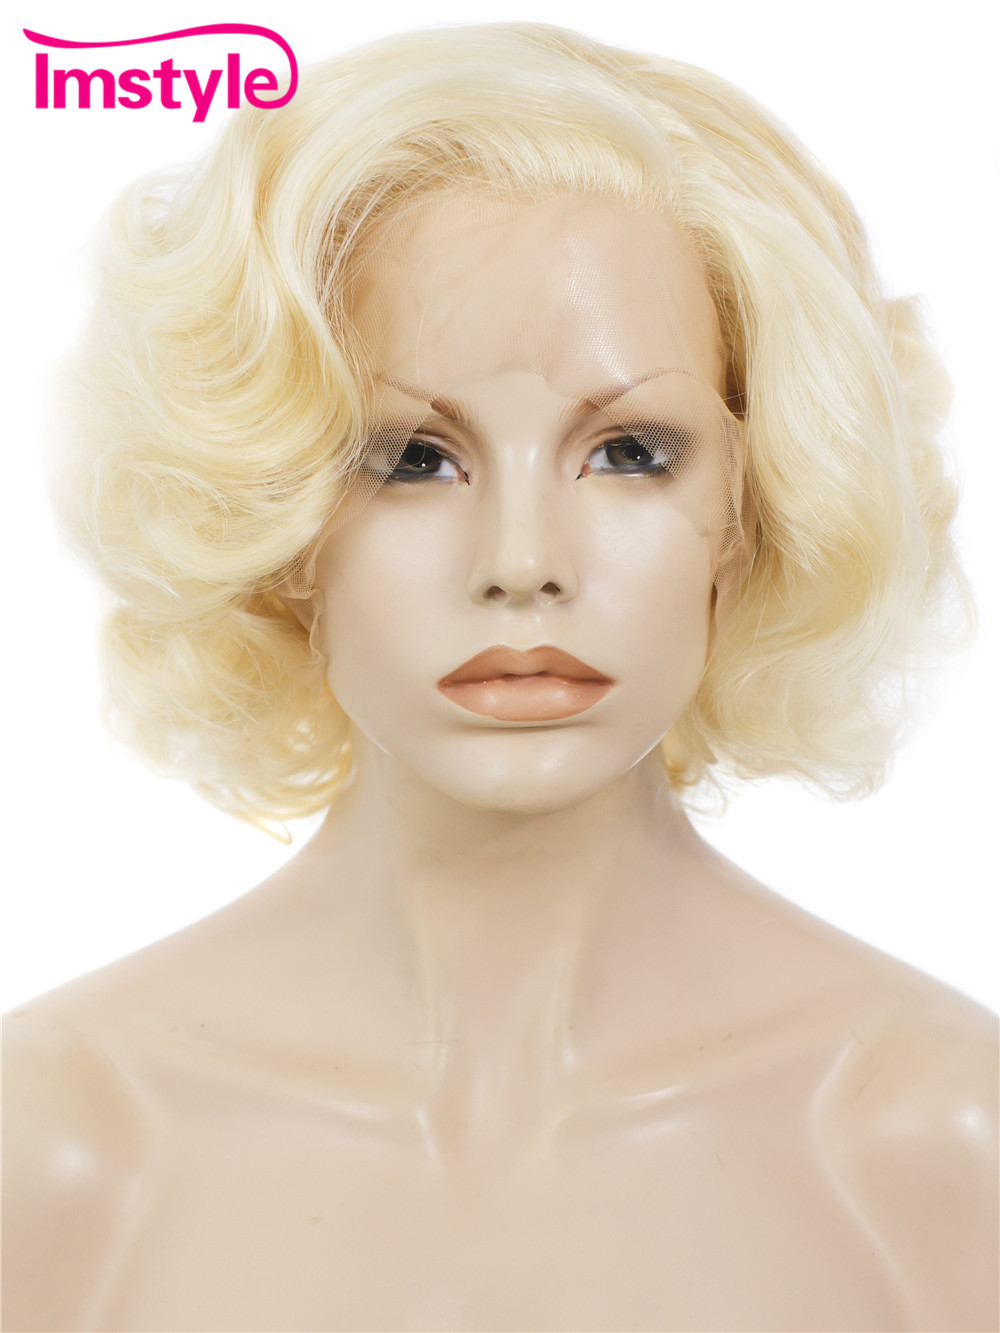 Imstyle Short Blonde Bob Wig Synthetic Lace Front Wig 10 inch 613 Natural Cosplay Heat Resistant Fiber